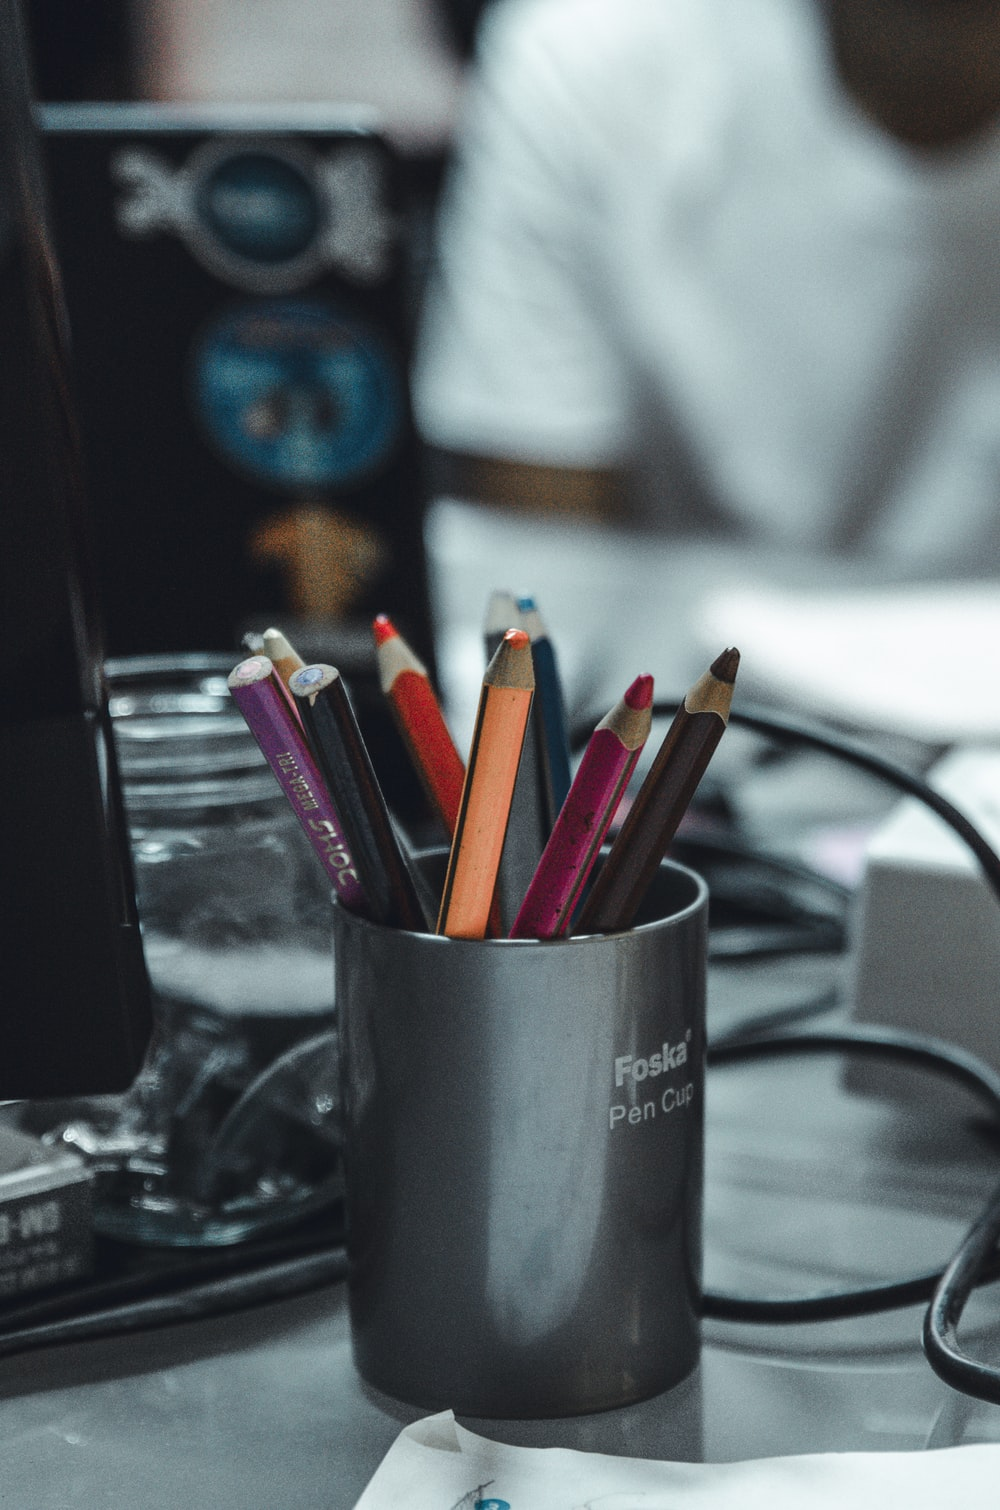 multicolored coloring pencils on black container